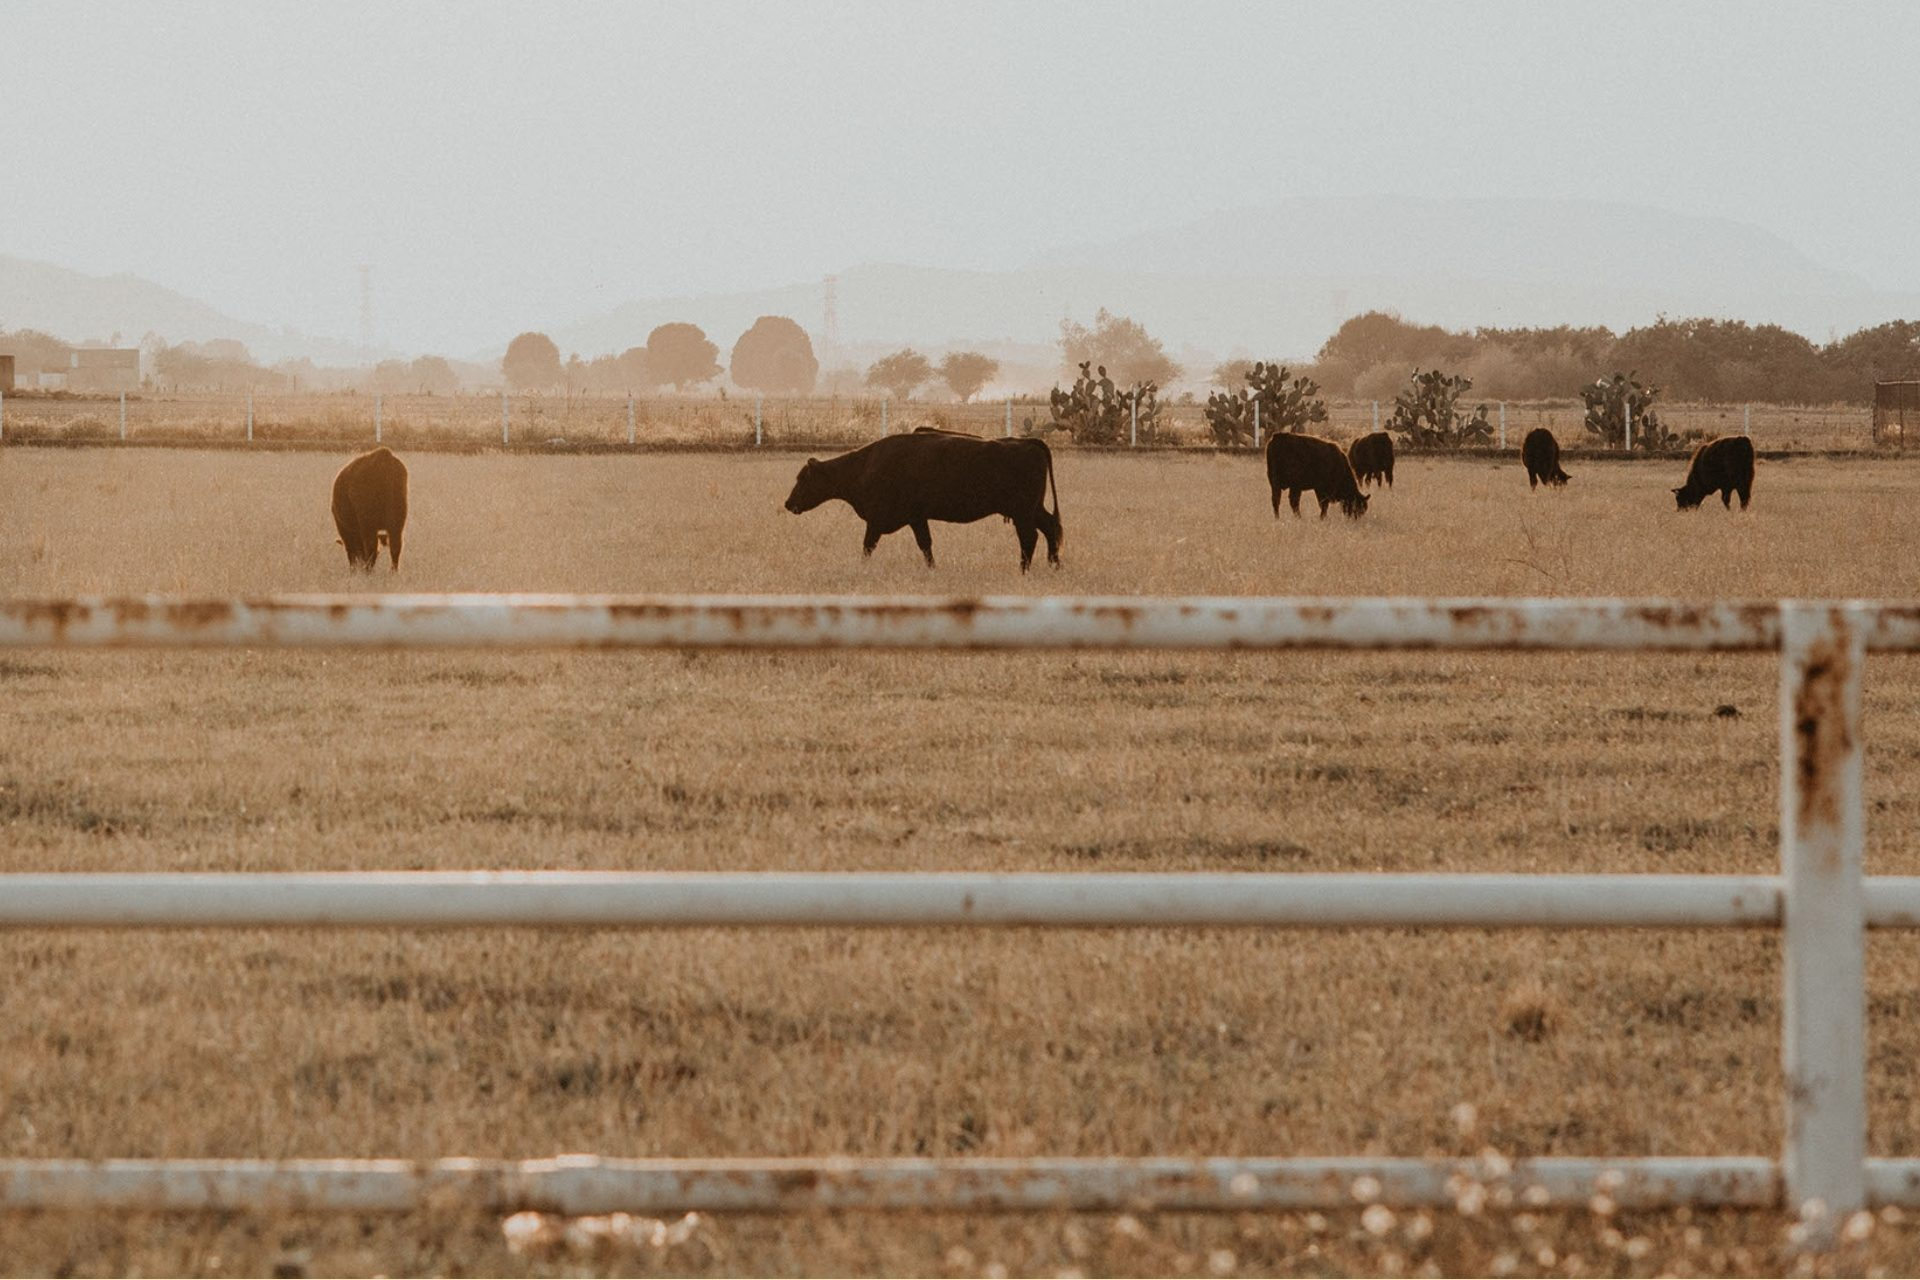 Group of cattle in field with grey smoky sky behind